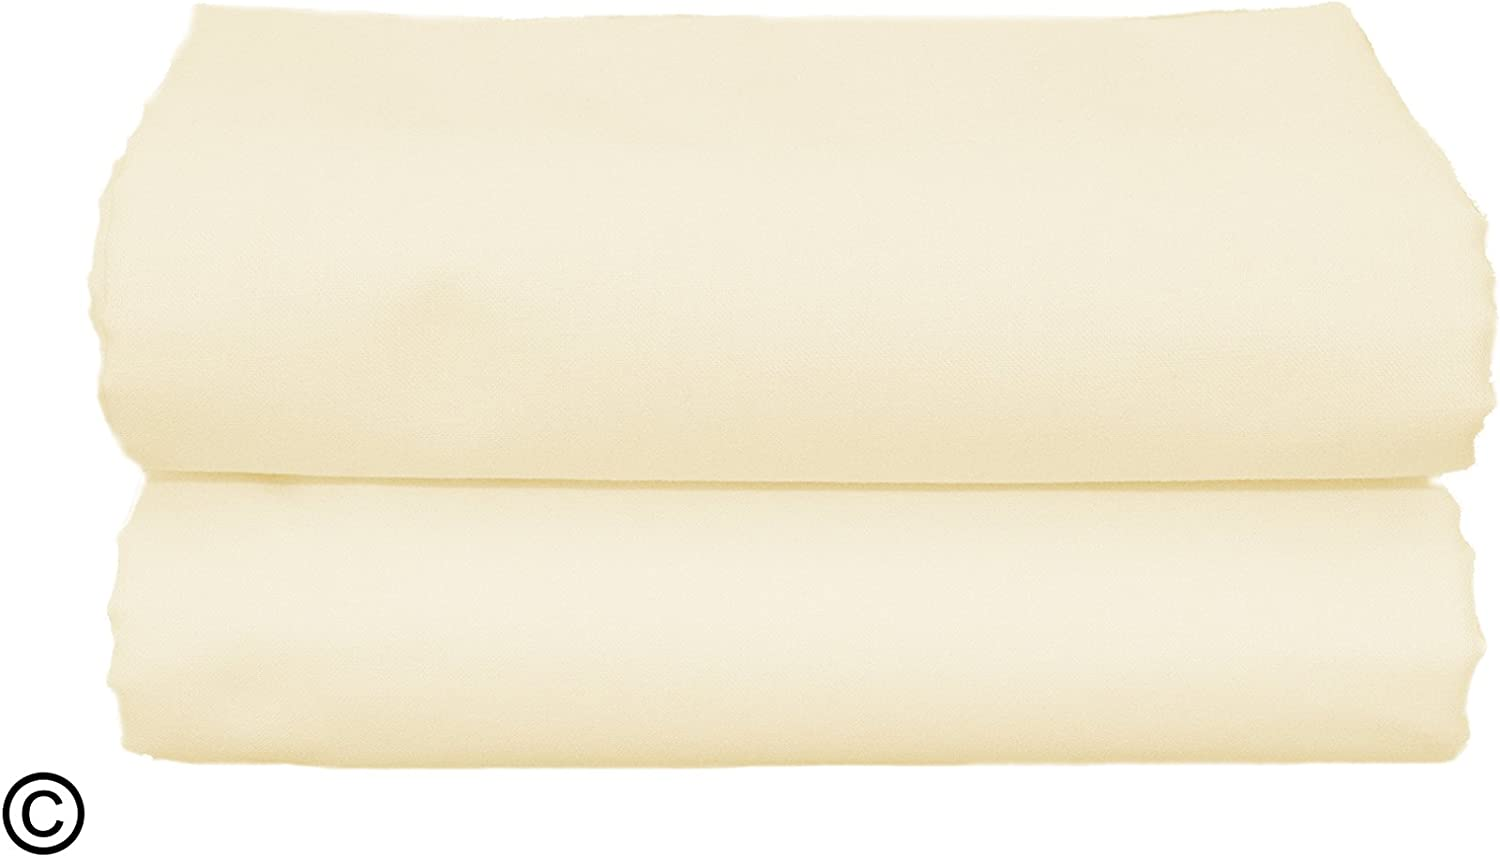 White Brand New Baby Cot Bed Pillow Case 60 x 40-100/% Cotton